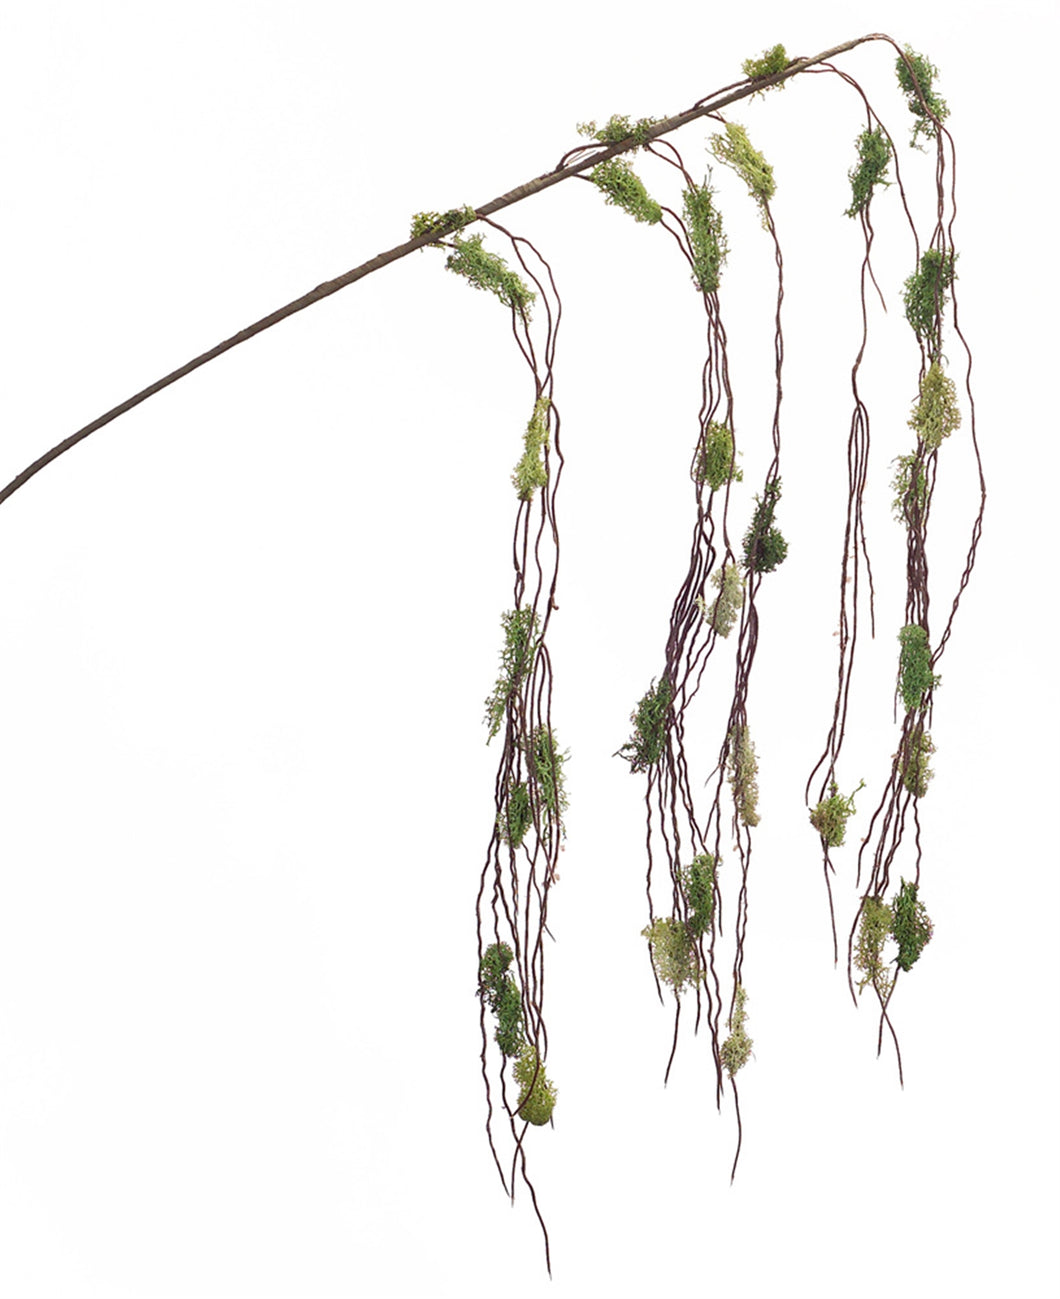 Moss Twig Hanging Branch 56